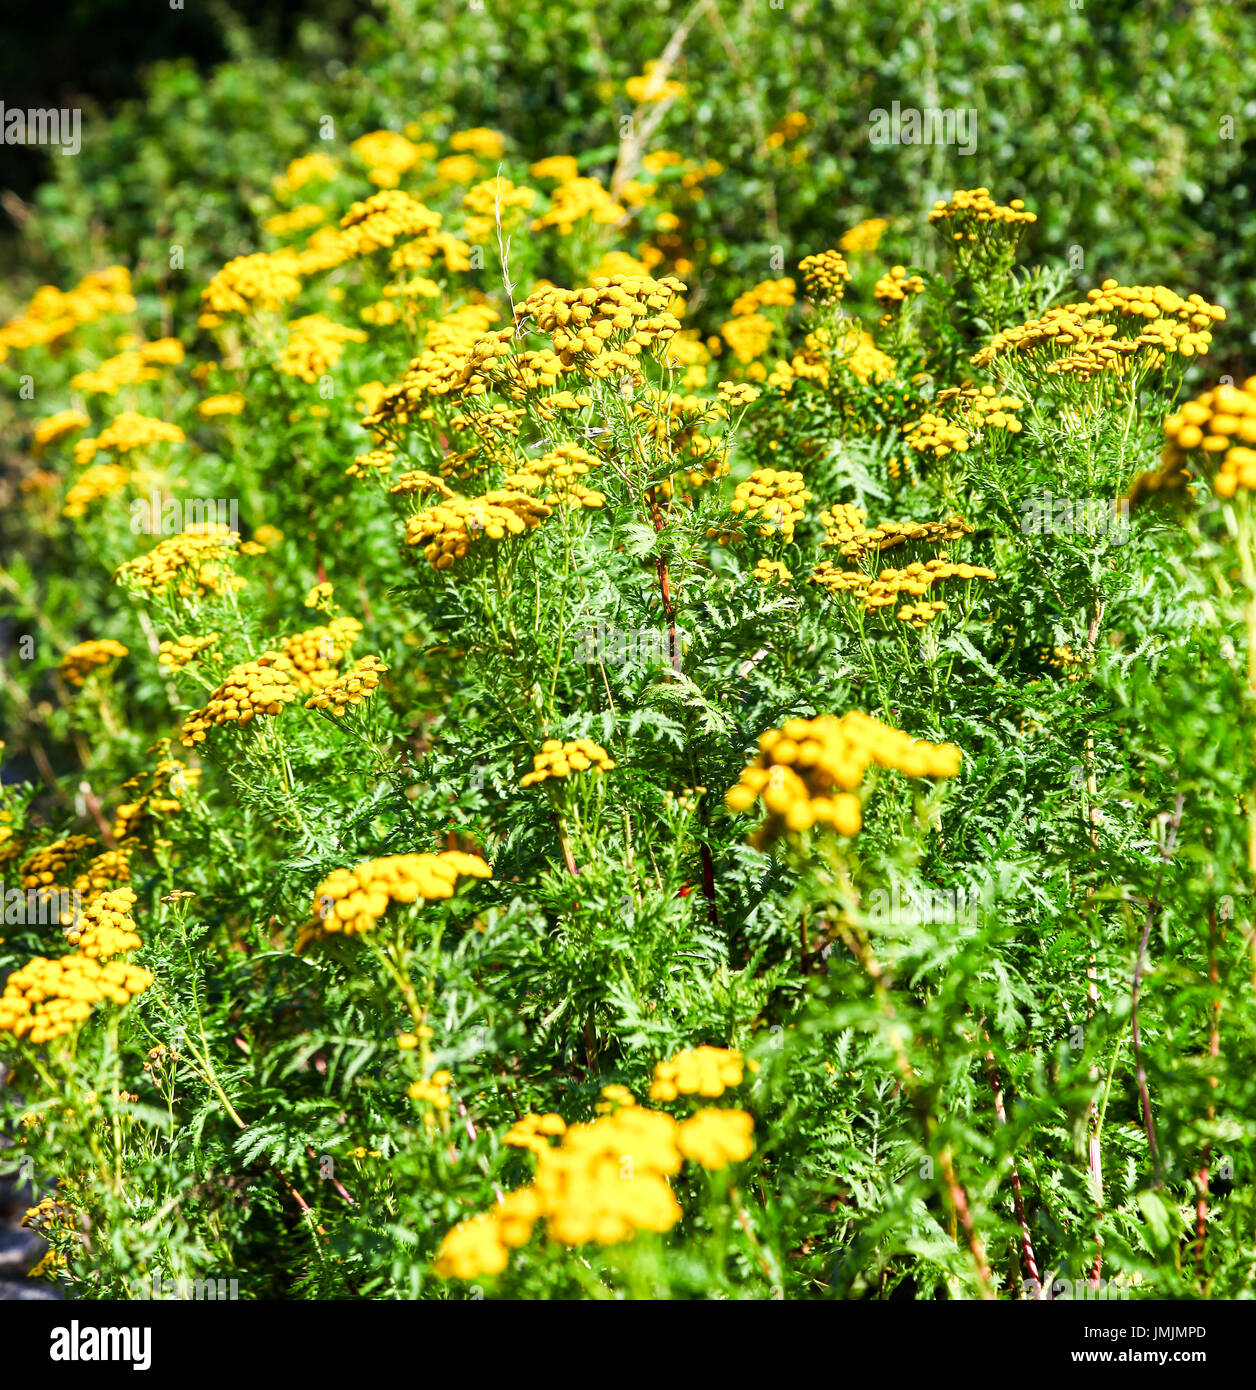 The yellow flowers of a common Tansy (Tanacetum vulgare), a perennial, herbaceous flowering plant of the aster family - Stock Image